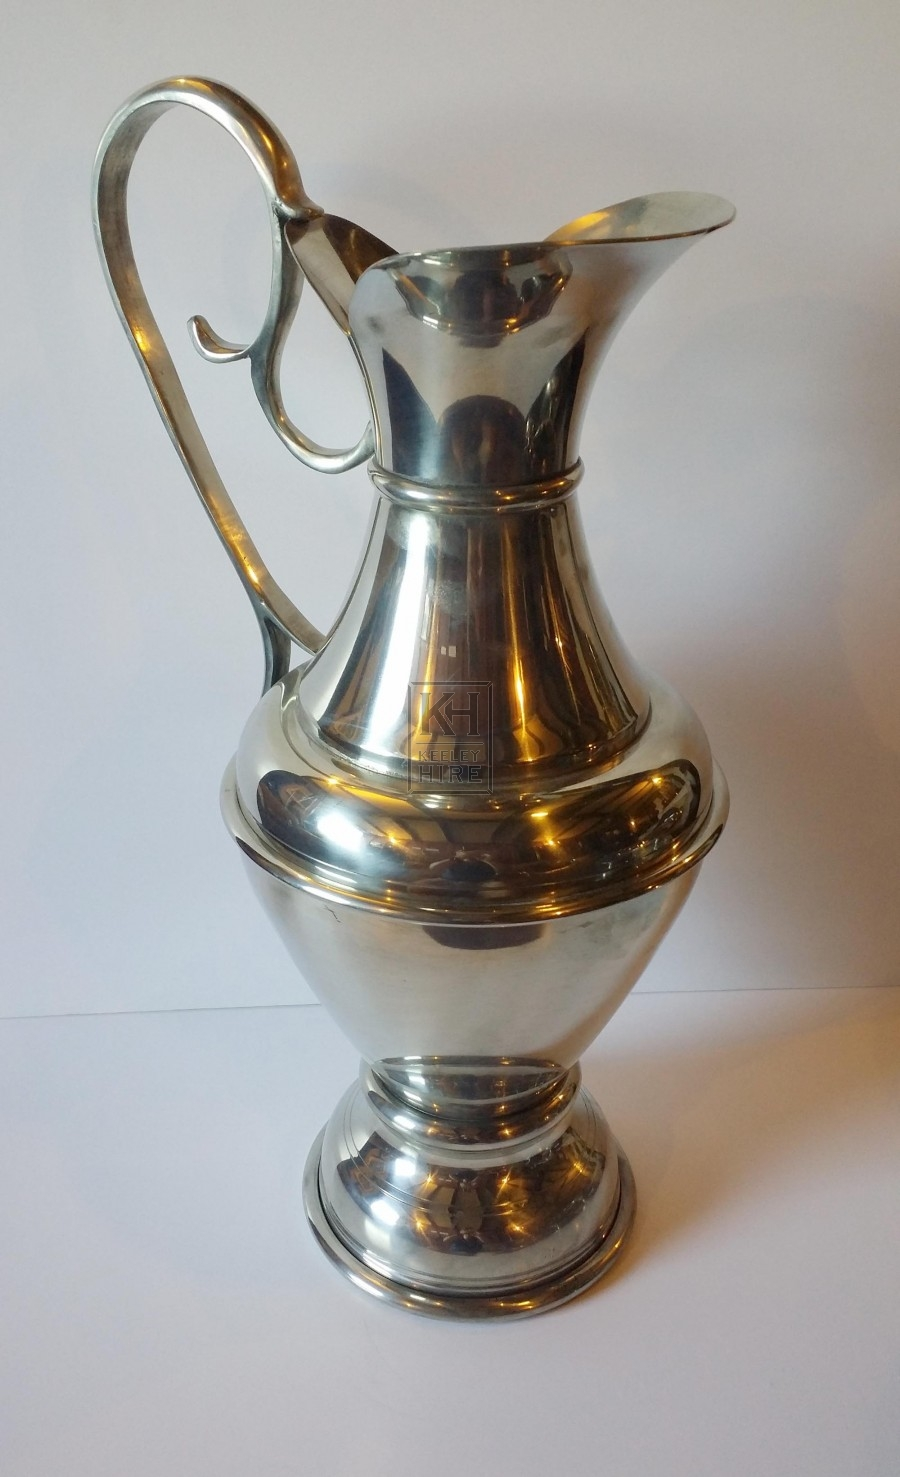 Very large silver jug with handle